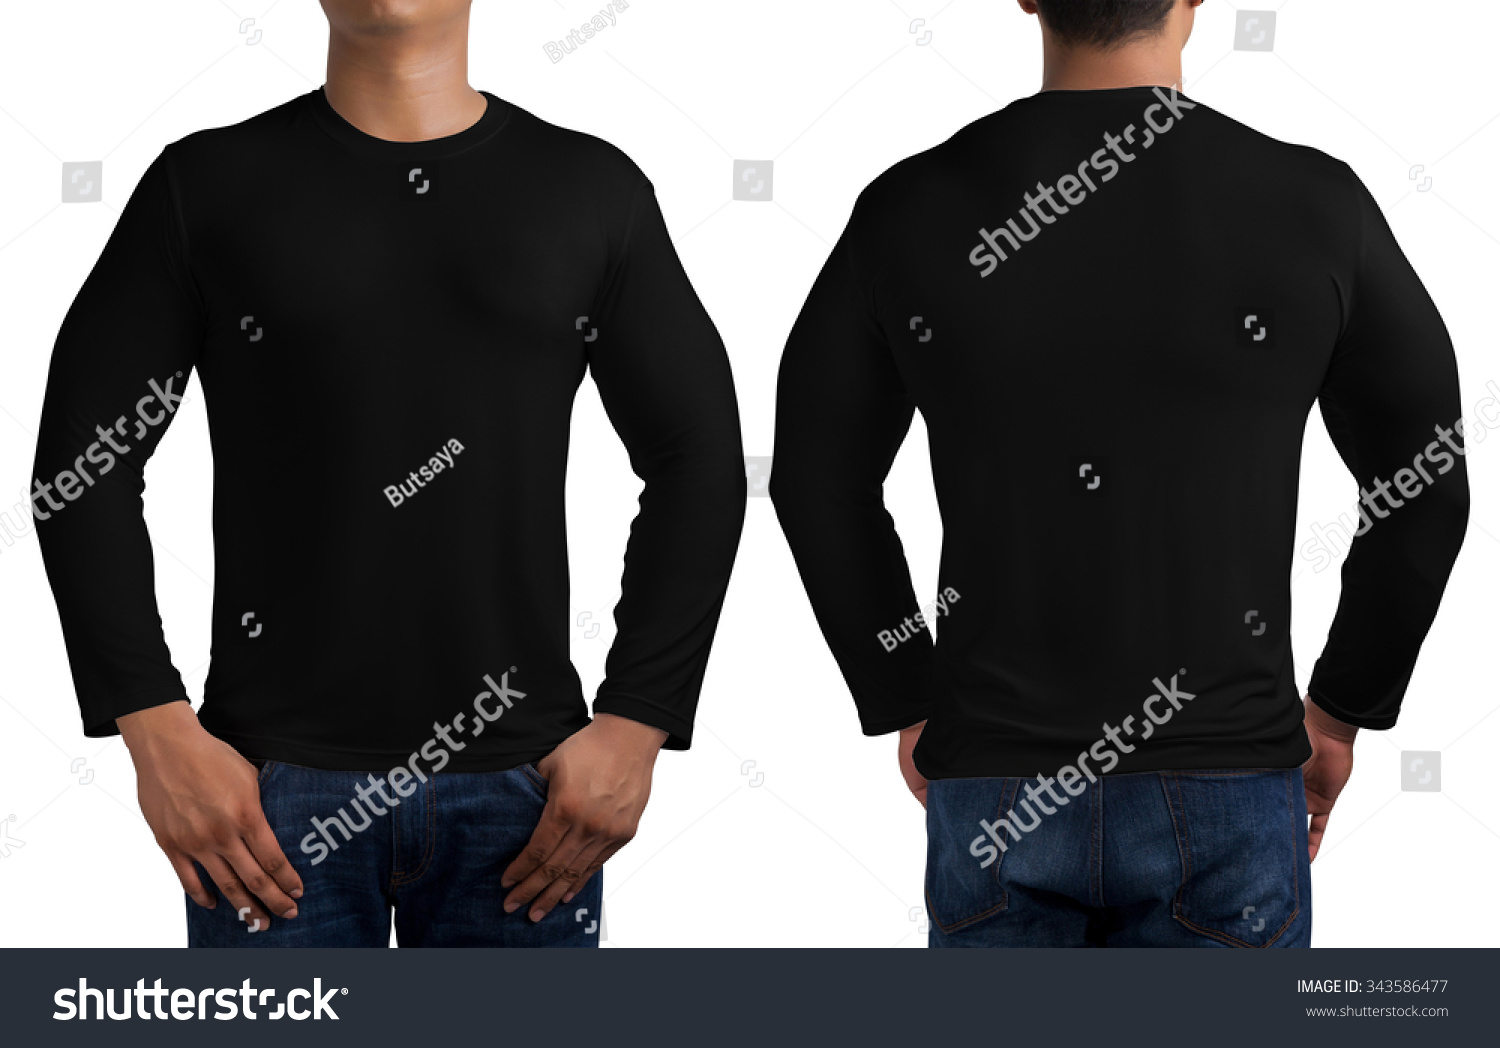 Black t shirt back and front - Man Body In Black Long Sleeves T Shirt Isolated On White Background Front And Back Stock Photo